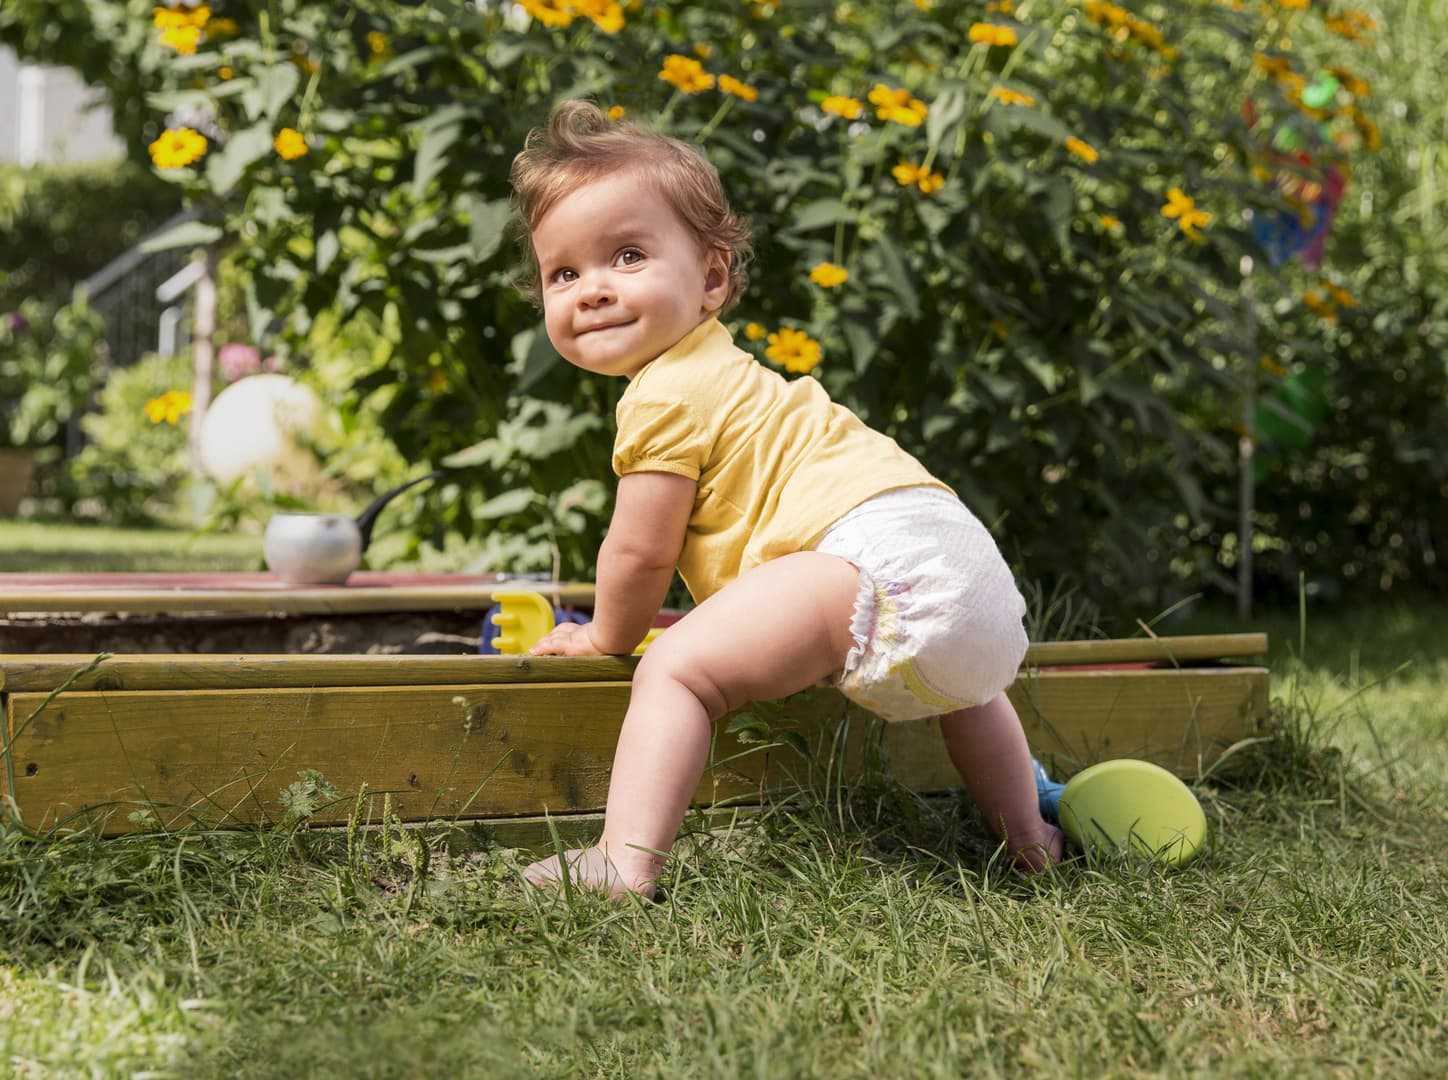 Pampers Kleine Entdecker-Initiative 2015